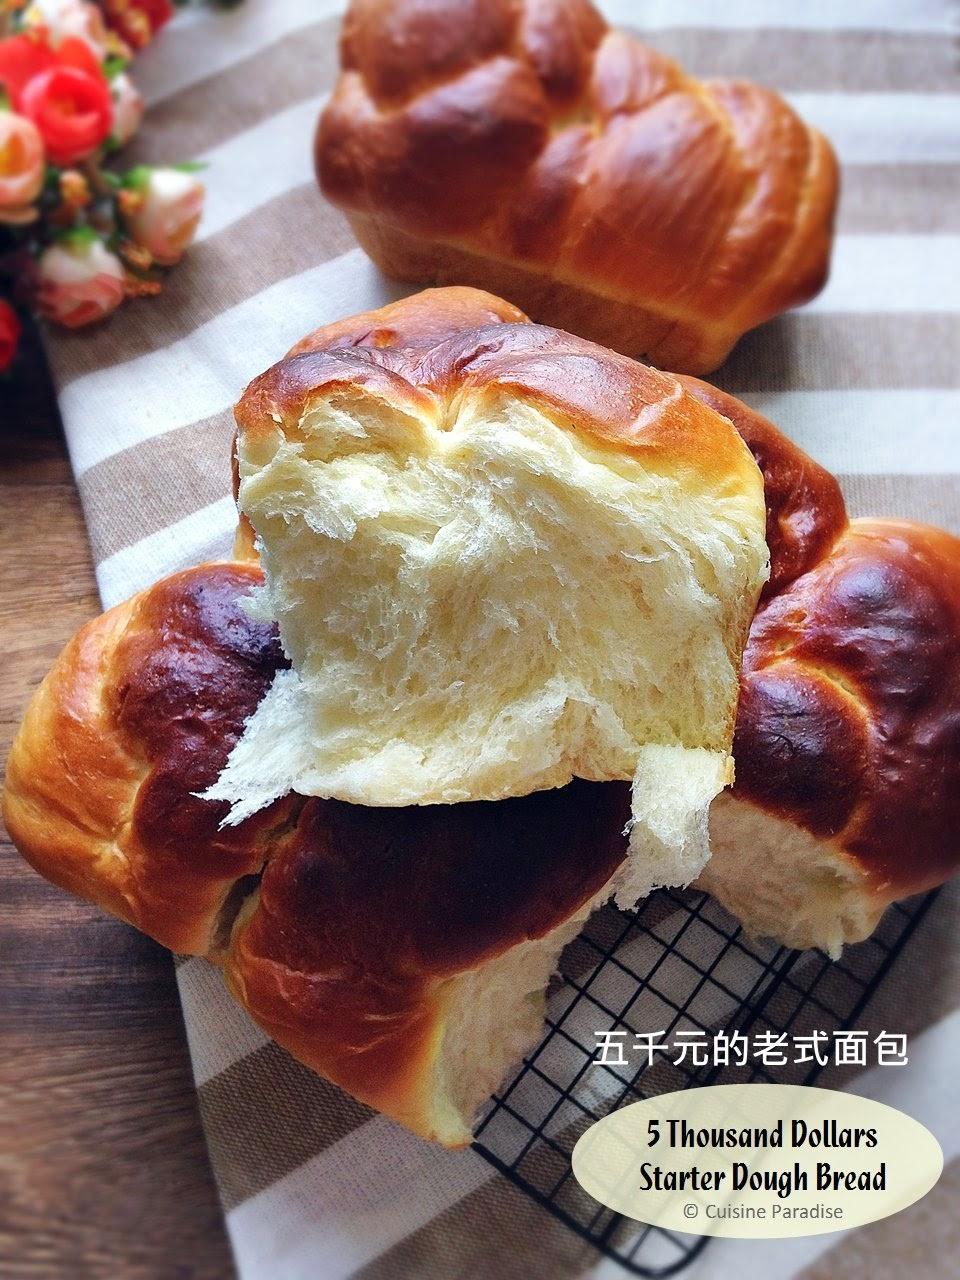 [kitchenaid dough recipe] 5 thousand dollars starter dough bread - 五千元的老式面包